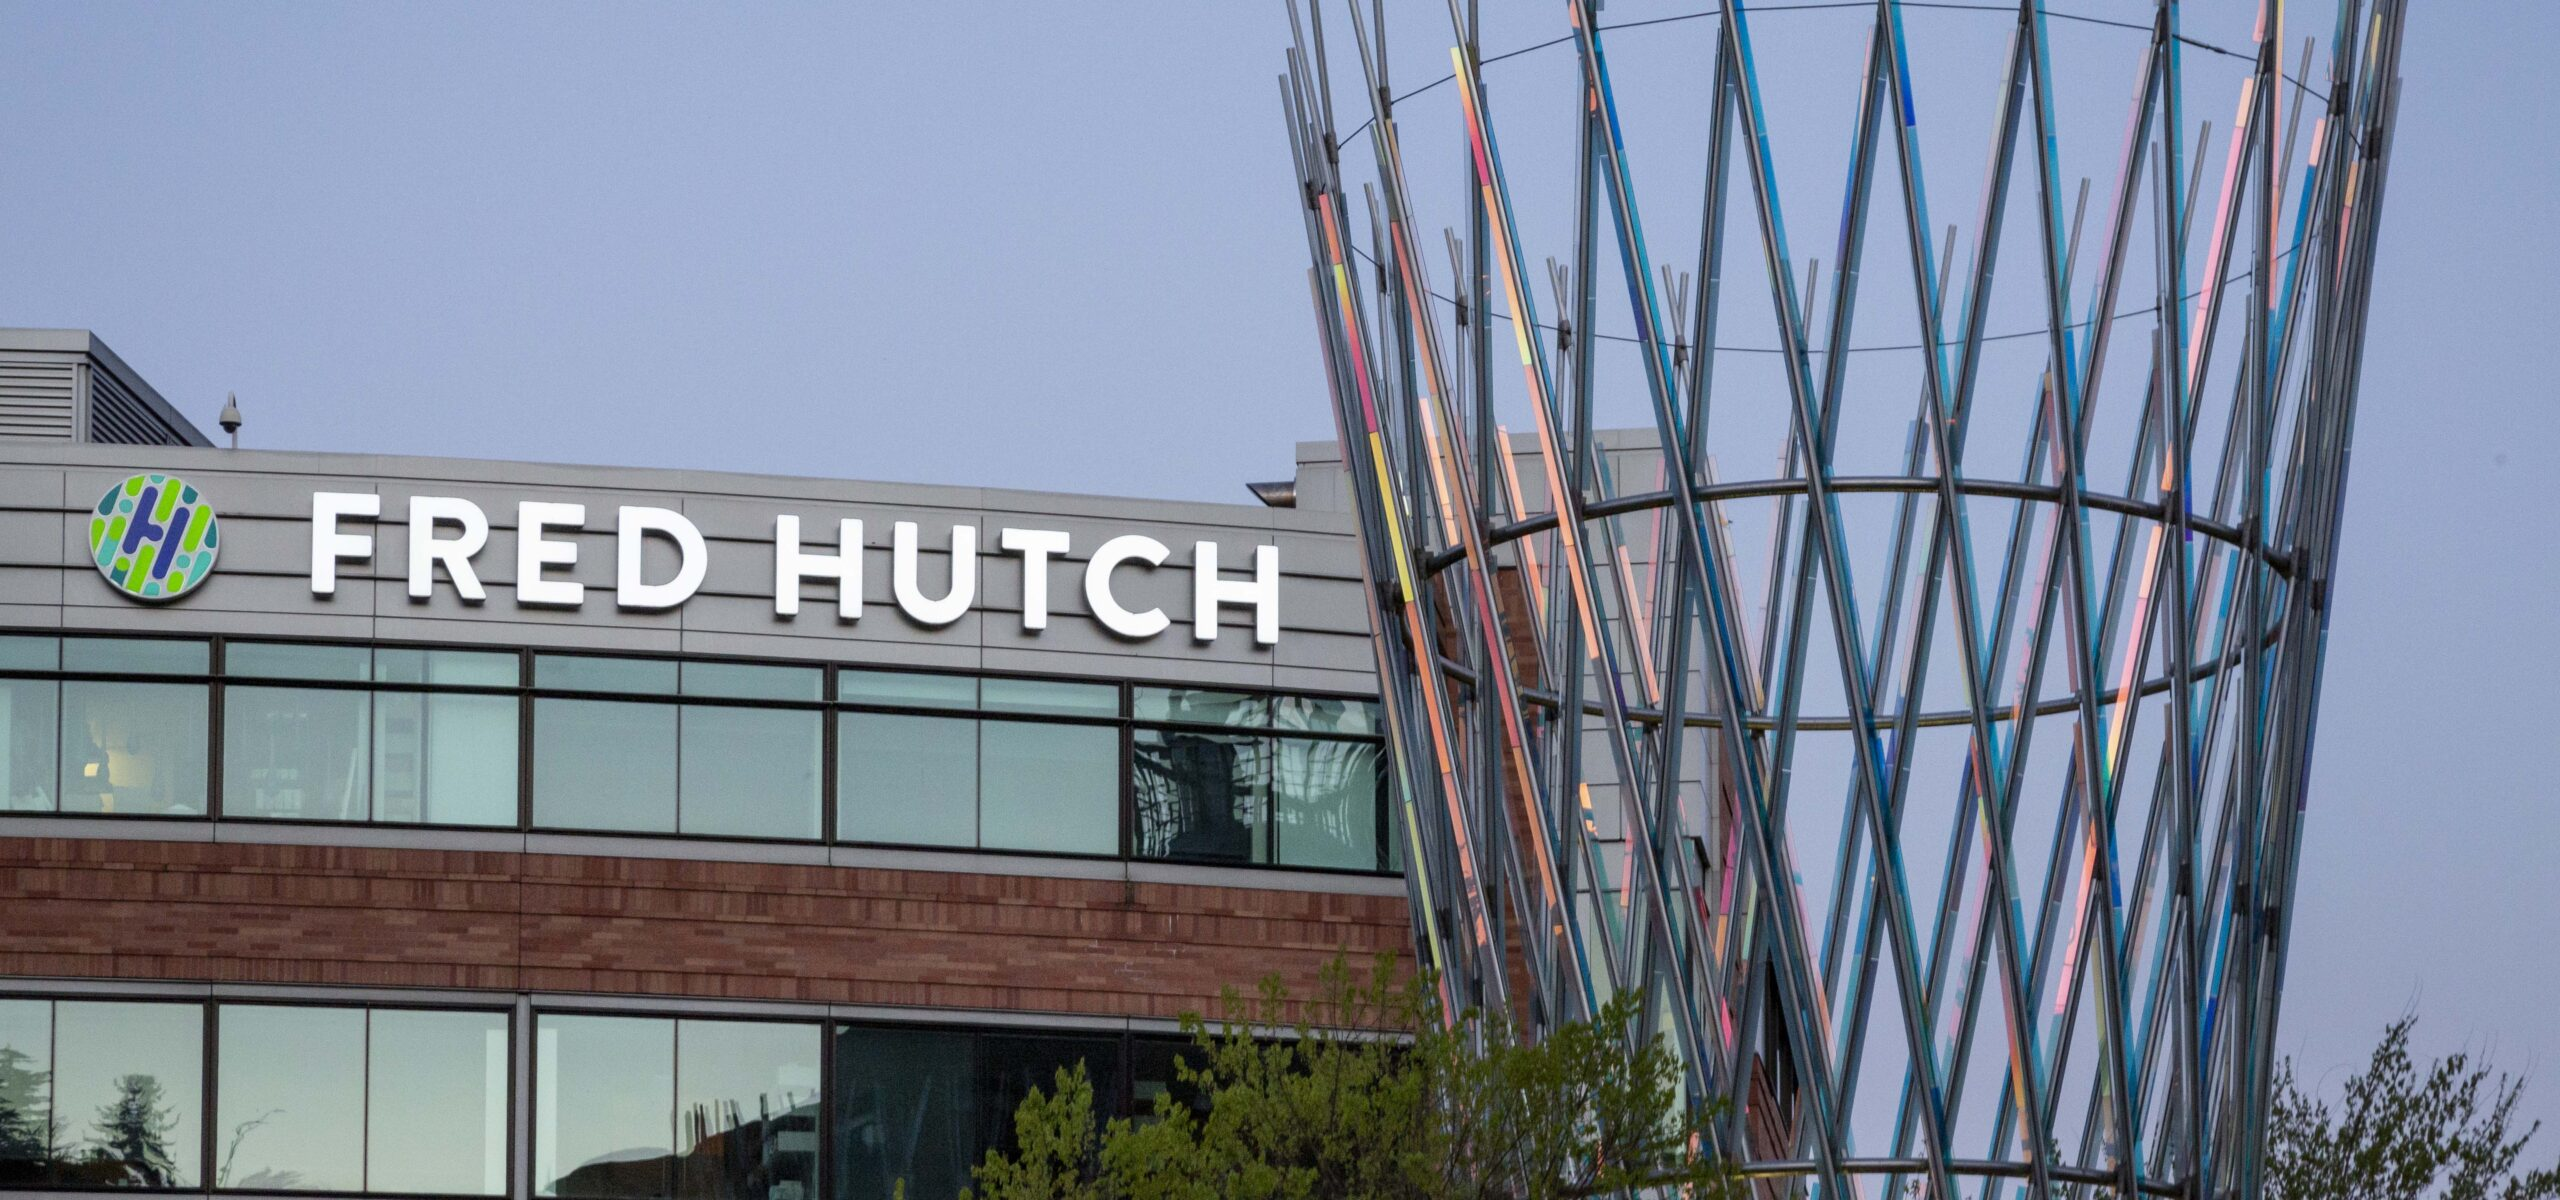 View of the neon marquee sign of the Fred Hutch campus with some woven metal outdoor art sculpture in the foreground.